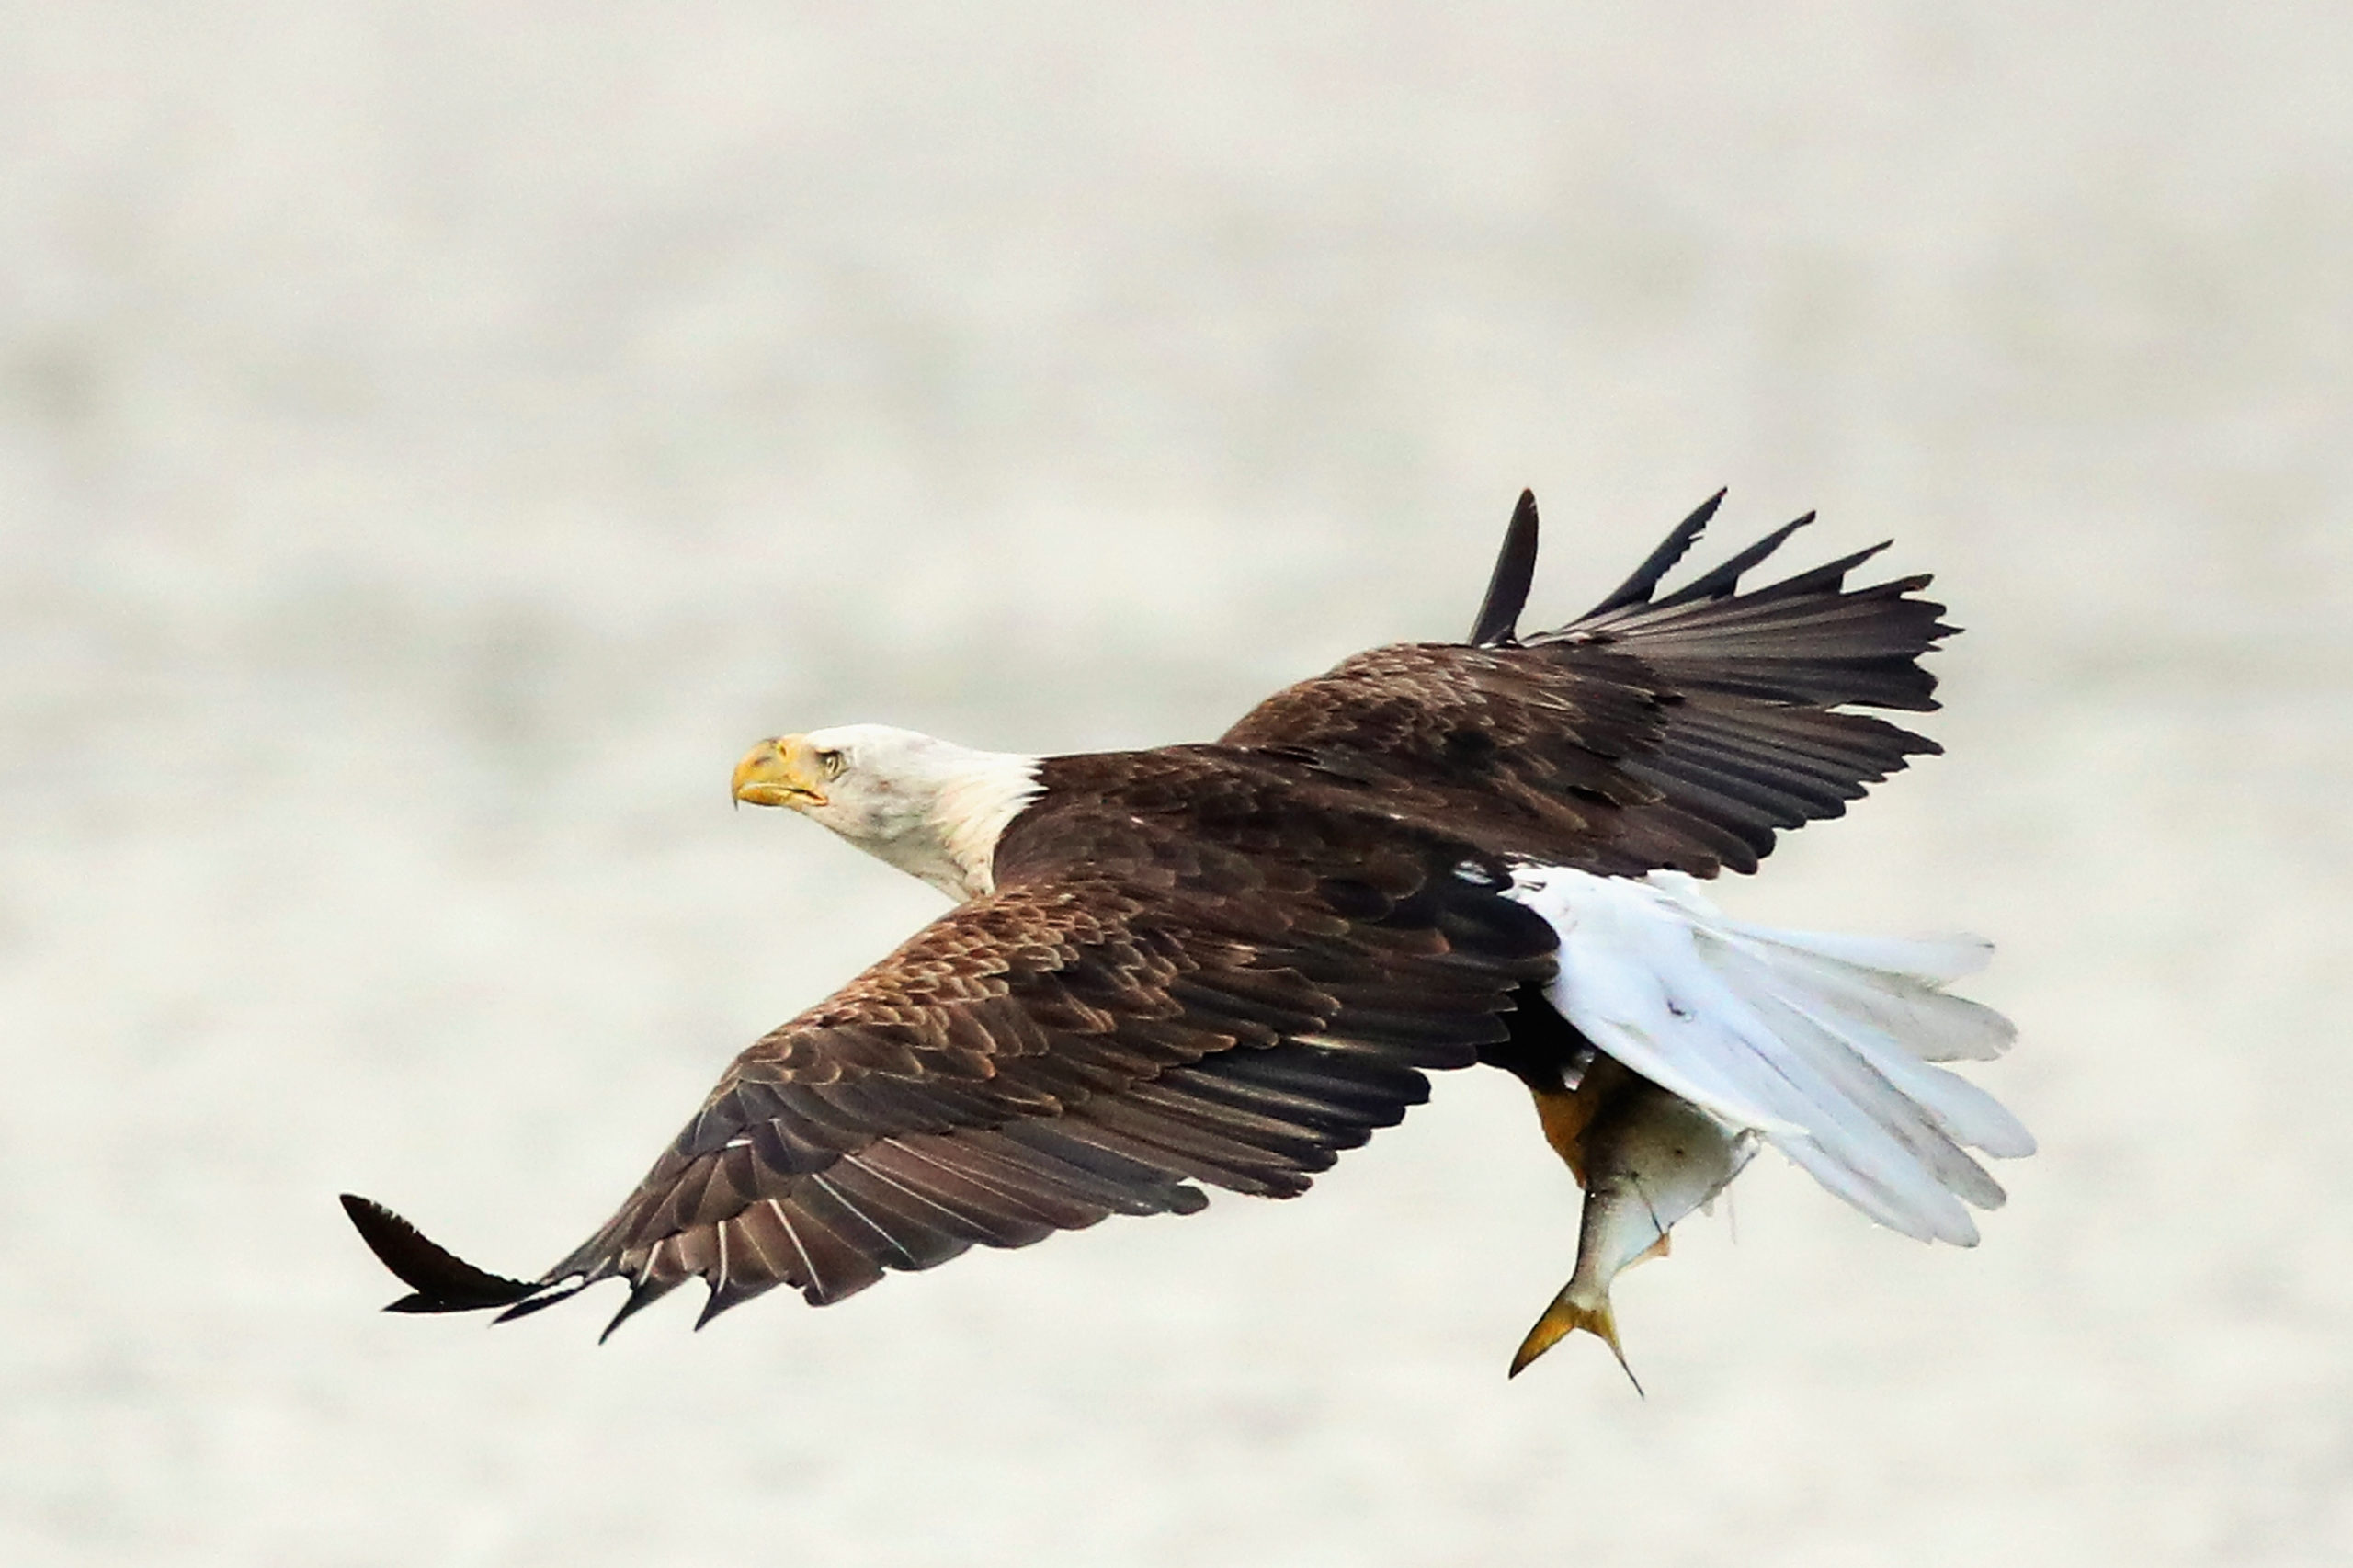 CENTERPORT, NY - JULY 29: An American bald eagle flies over Mill Pond with a freshly caught fish on July 29, 2018 in Centerport, New York. (Photo by Bruce Bennett/Getty Images)